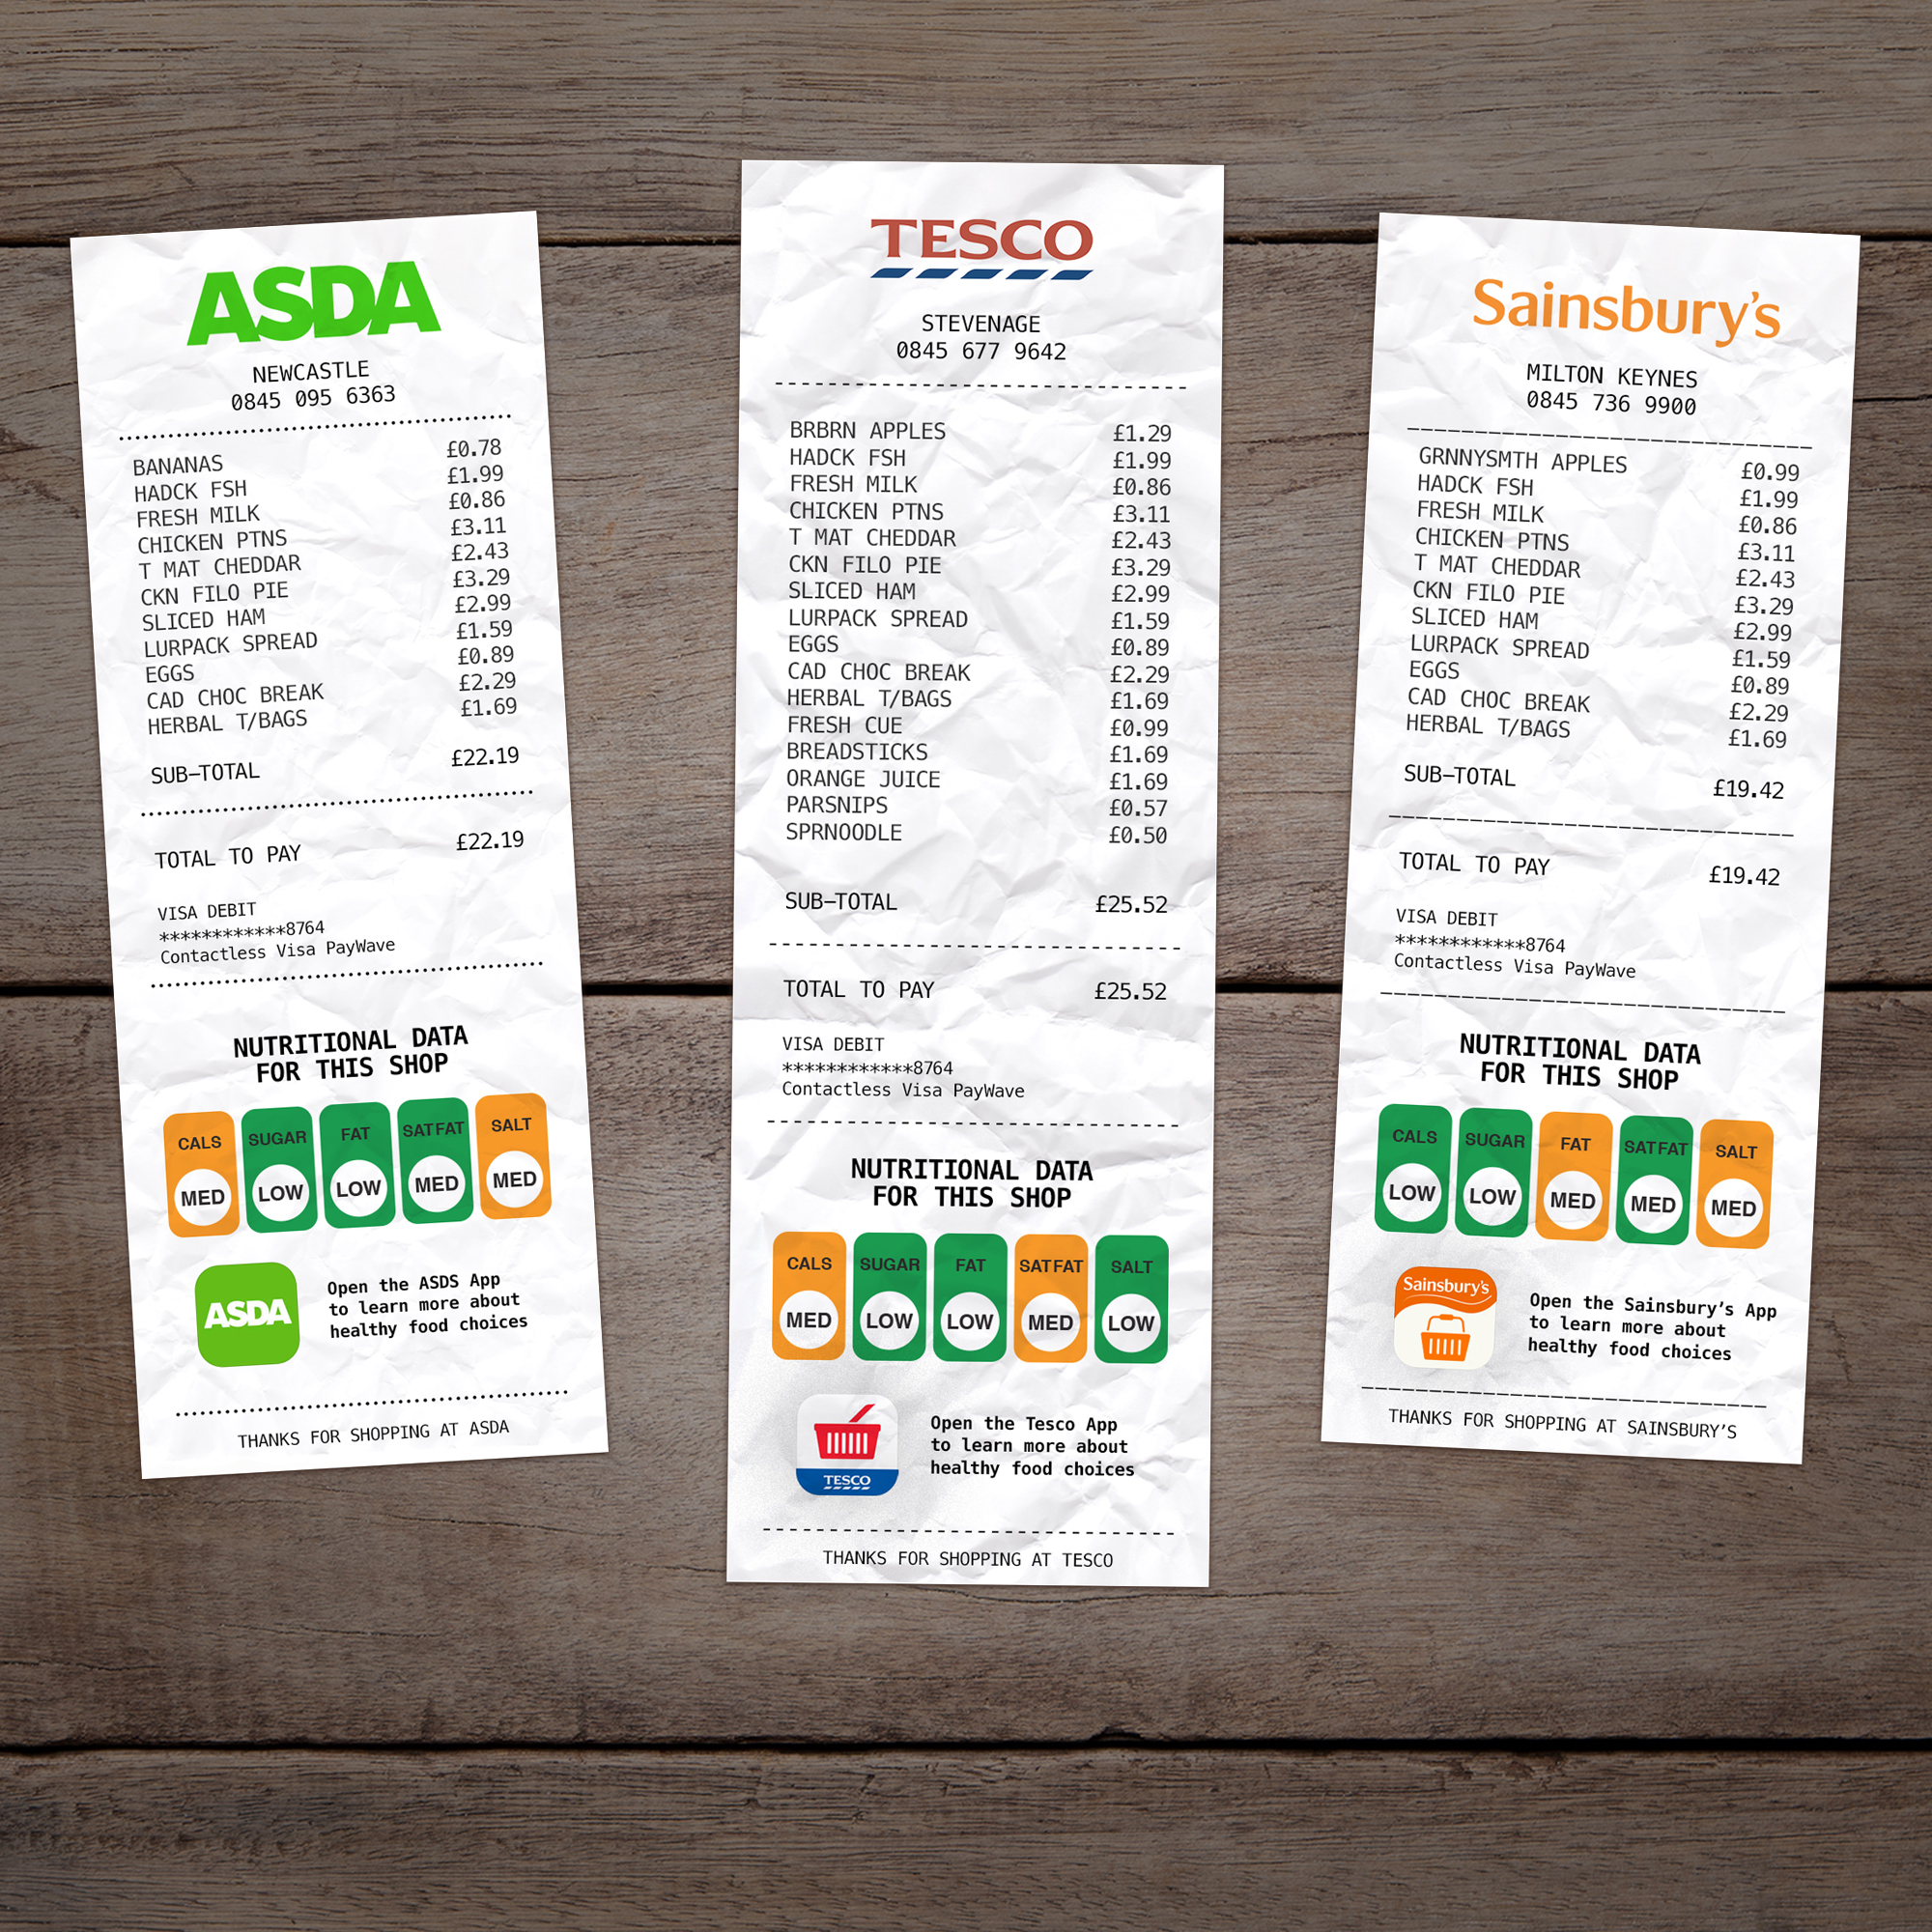 FWX HAYDEN PEEK NUTRITION RECEIPT